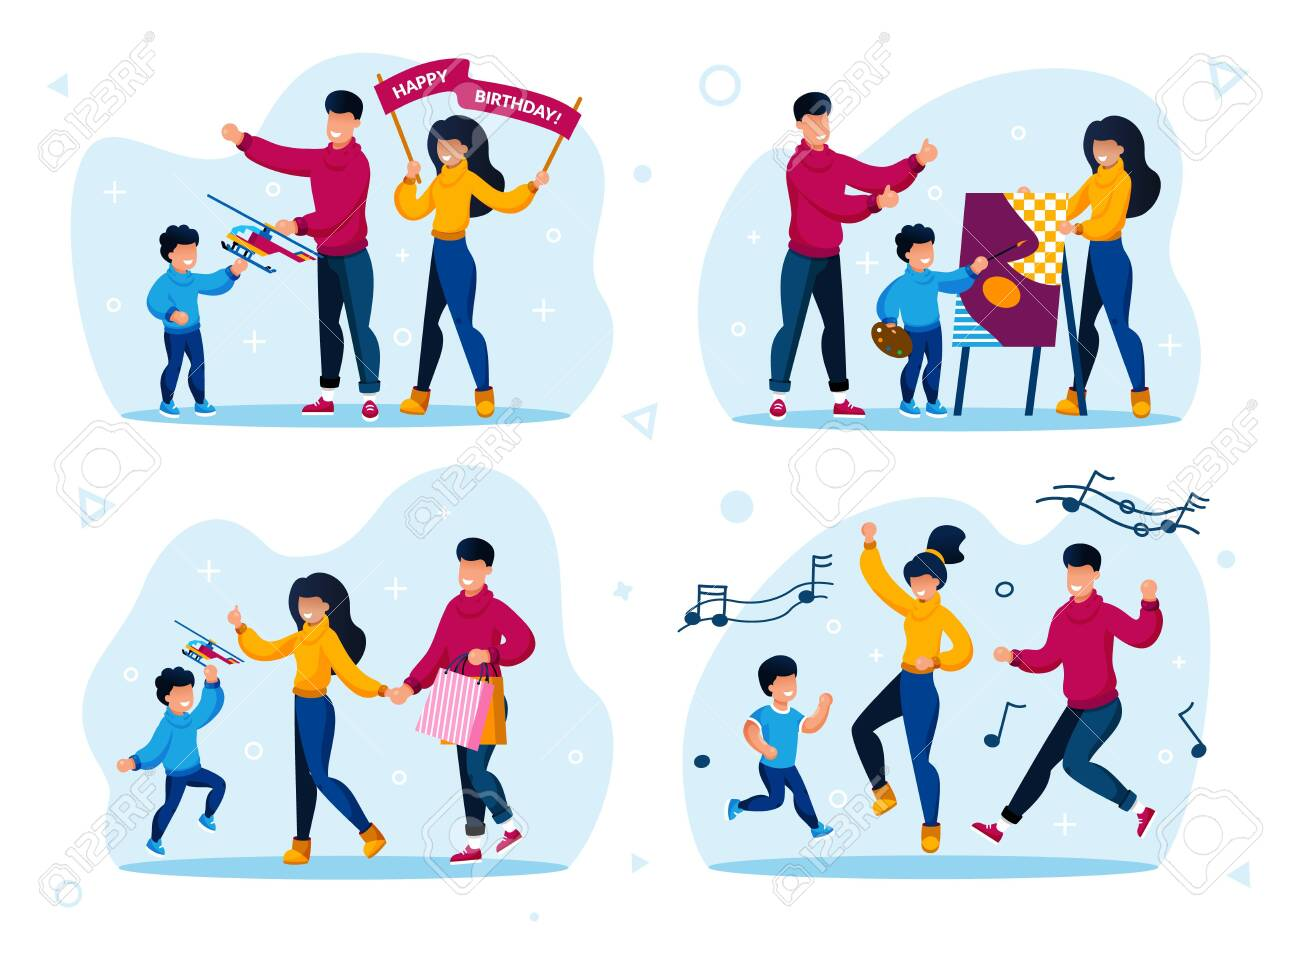 Parents with Children Active Life Trendy Flat Vector Concepts Set. Parents with Children Giving Son Toy on Birthday Party, Learning to Draw, Shopping on Sale, Dancing Together Isolated Illustrations - 148488545